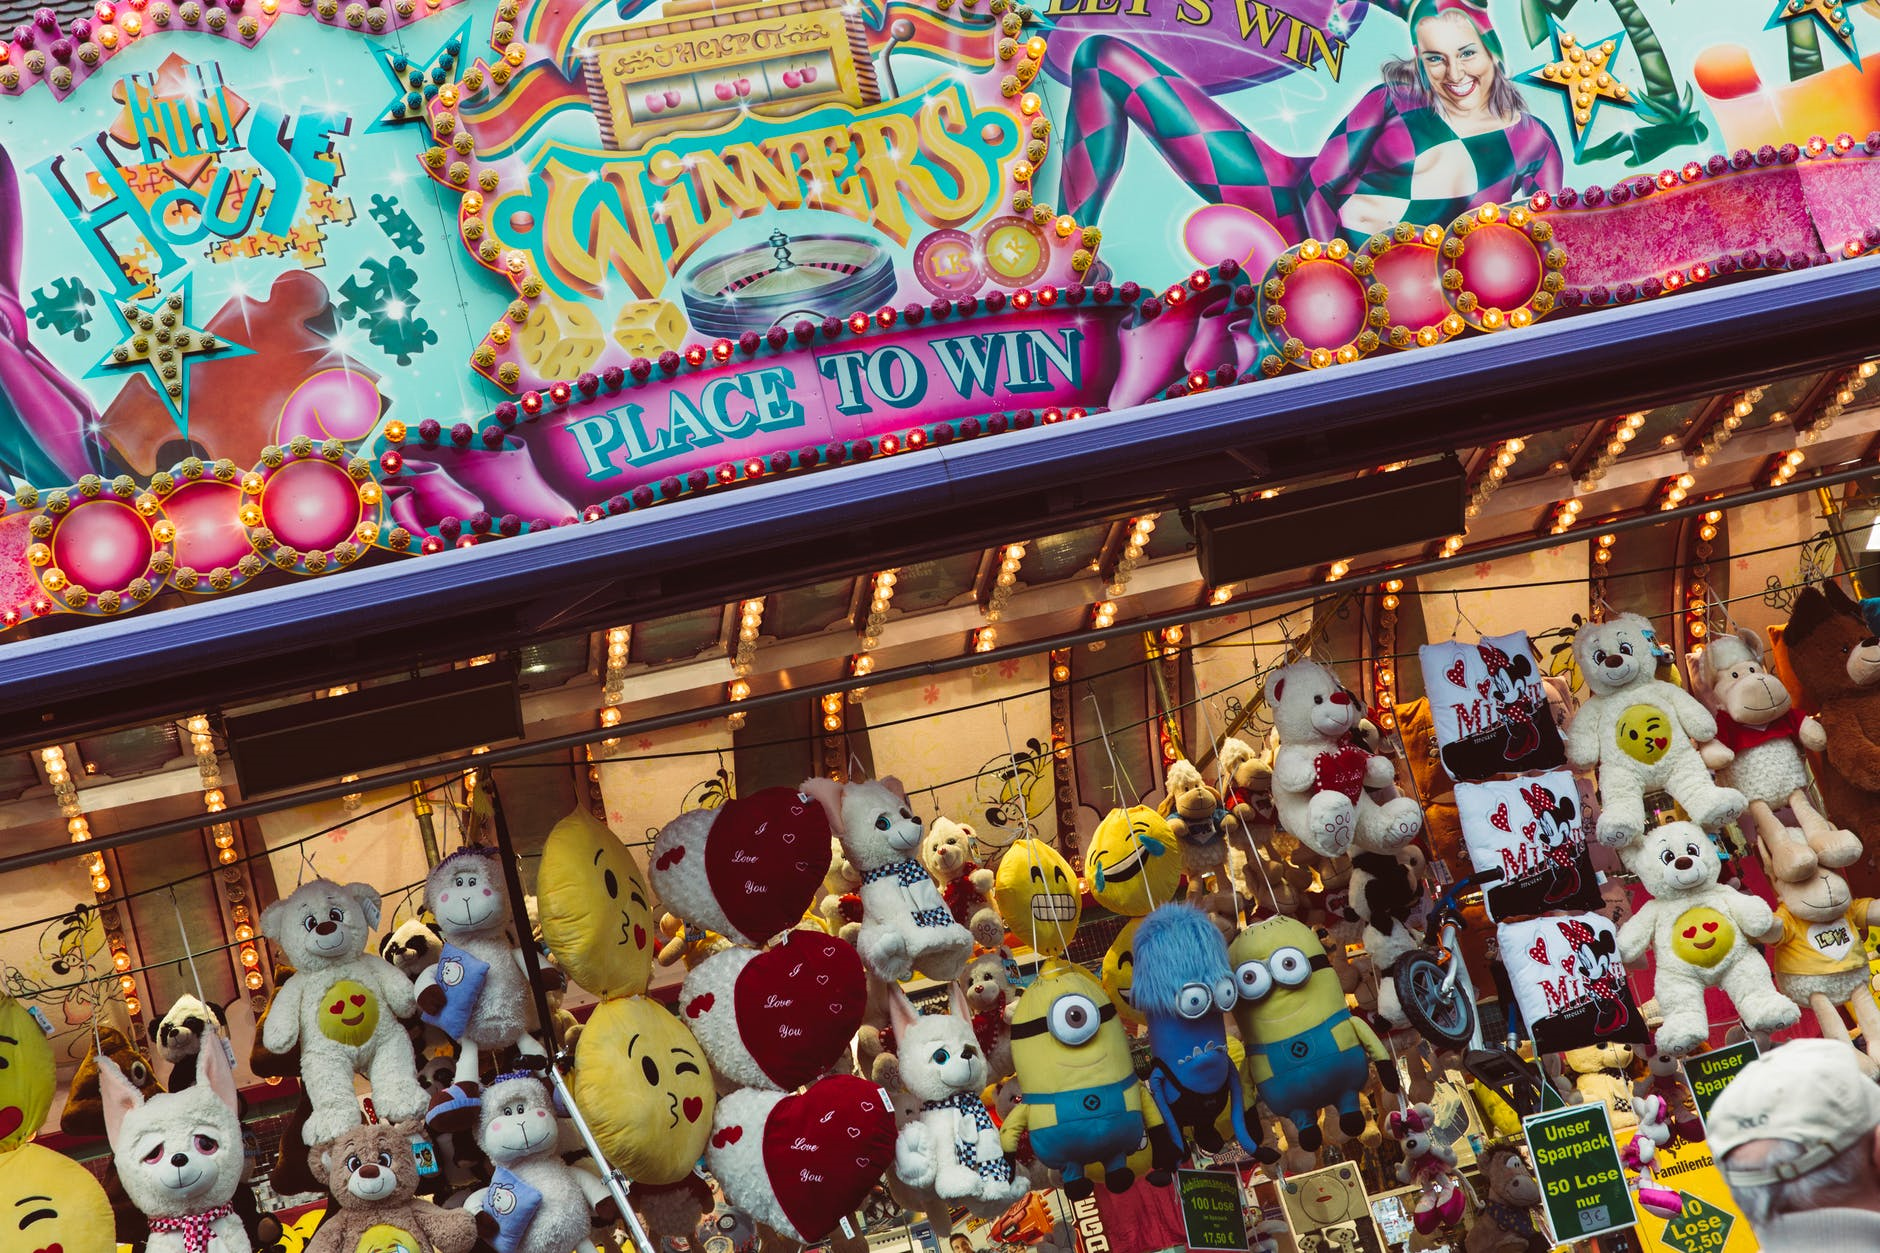 midway of a carnival with prizes